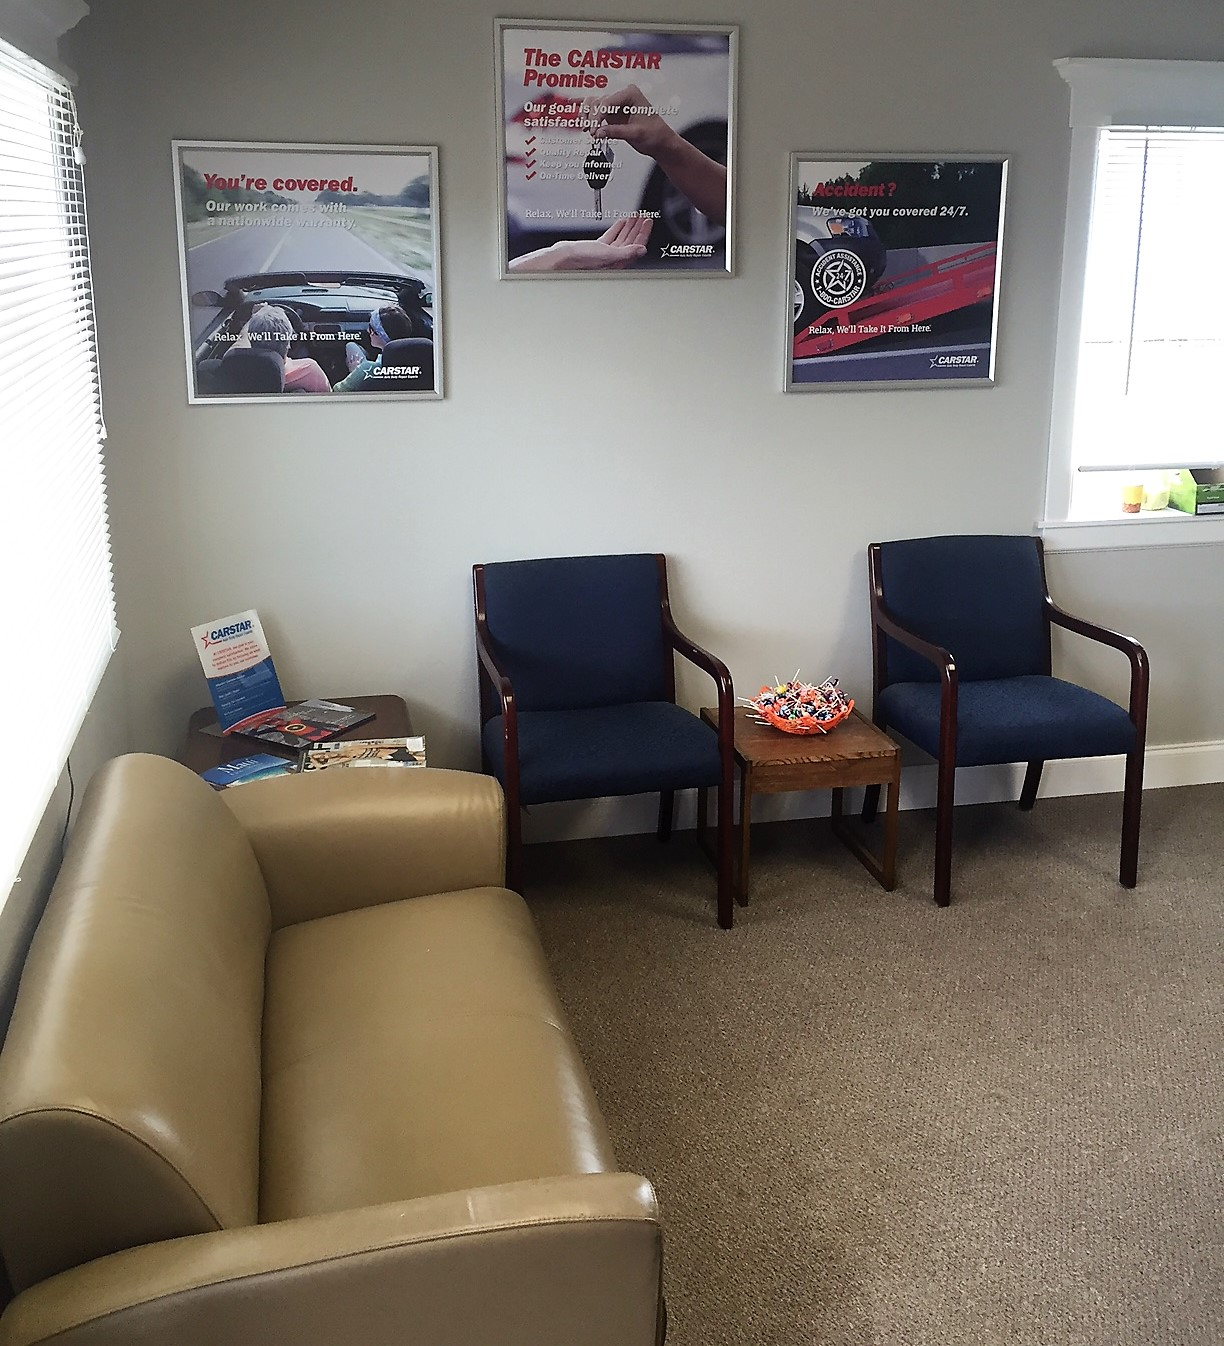 Hi-Tech CARSTAR Eastside: Customer Waiting area